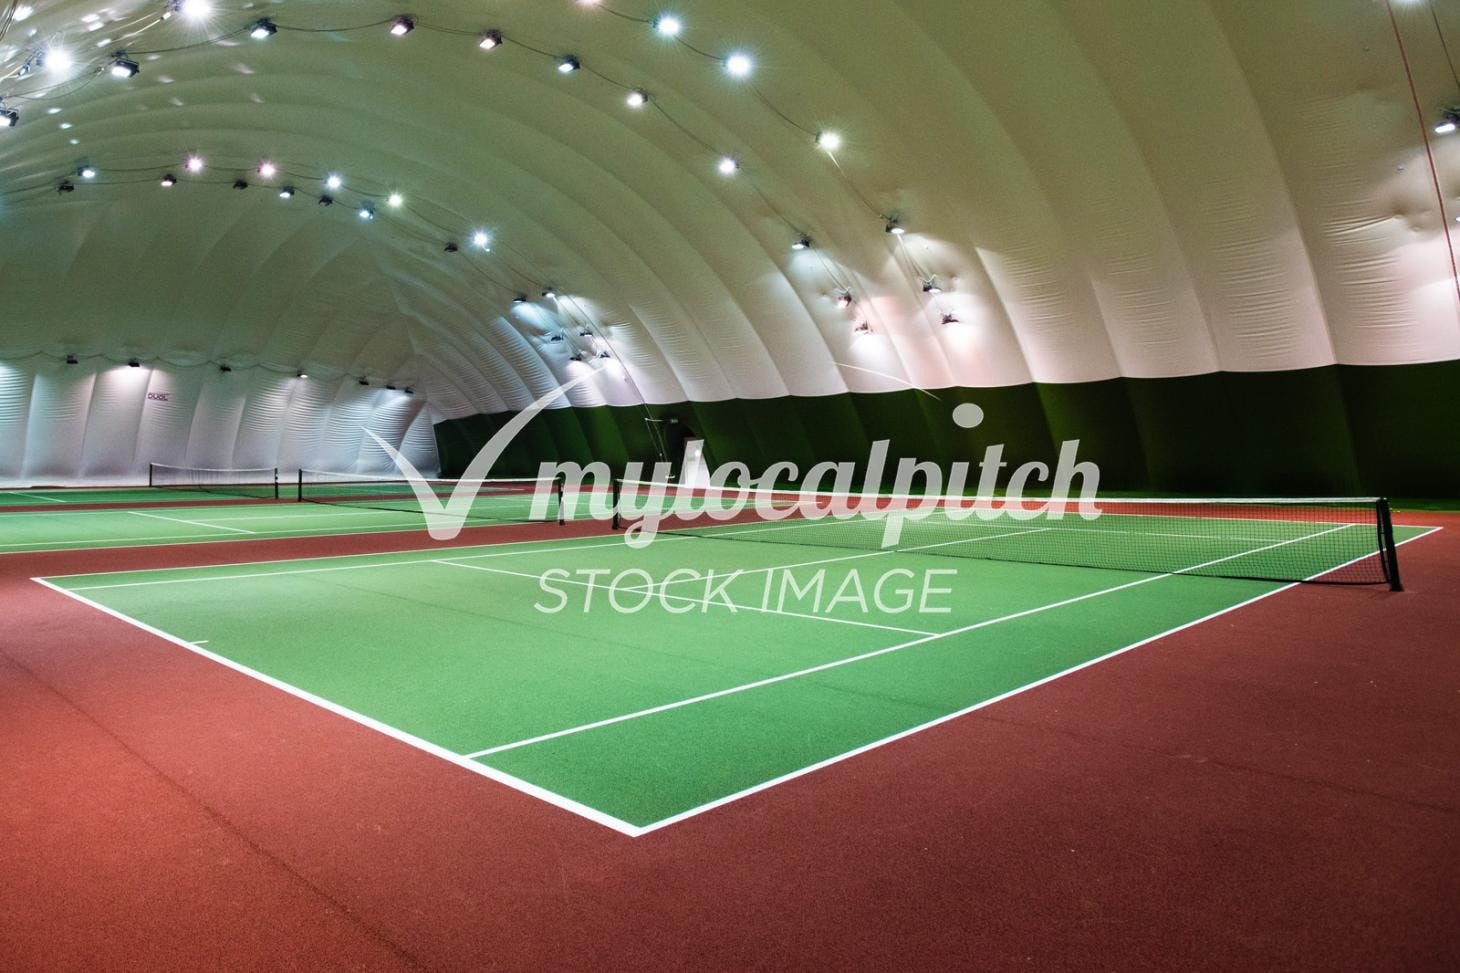 Bromley Lawn Tennis and Squash Club Indoor tennis court